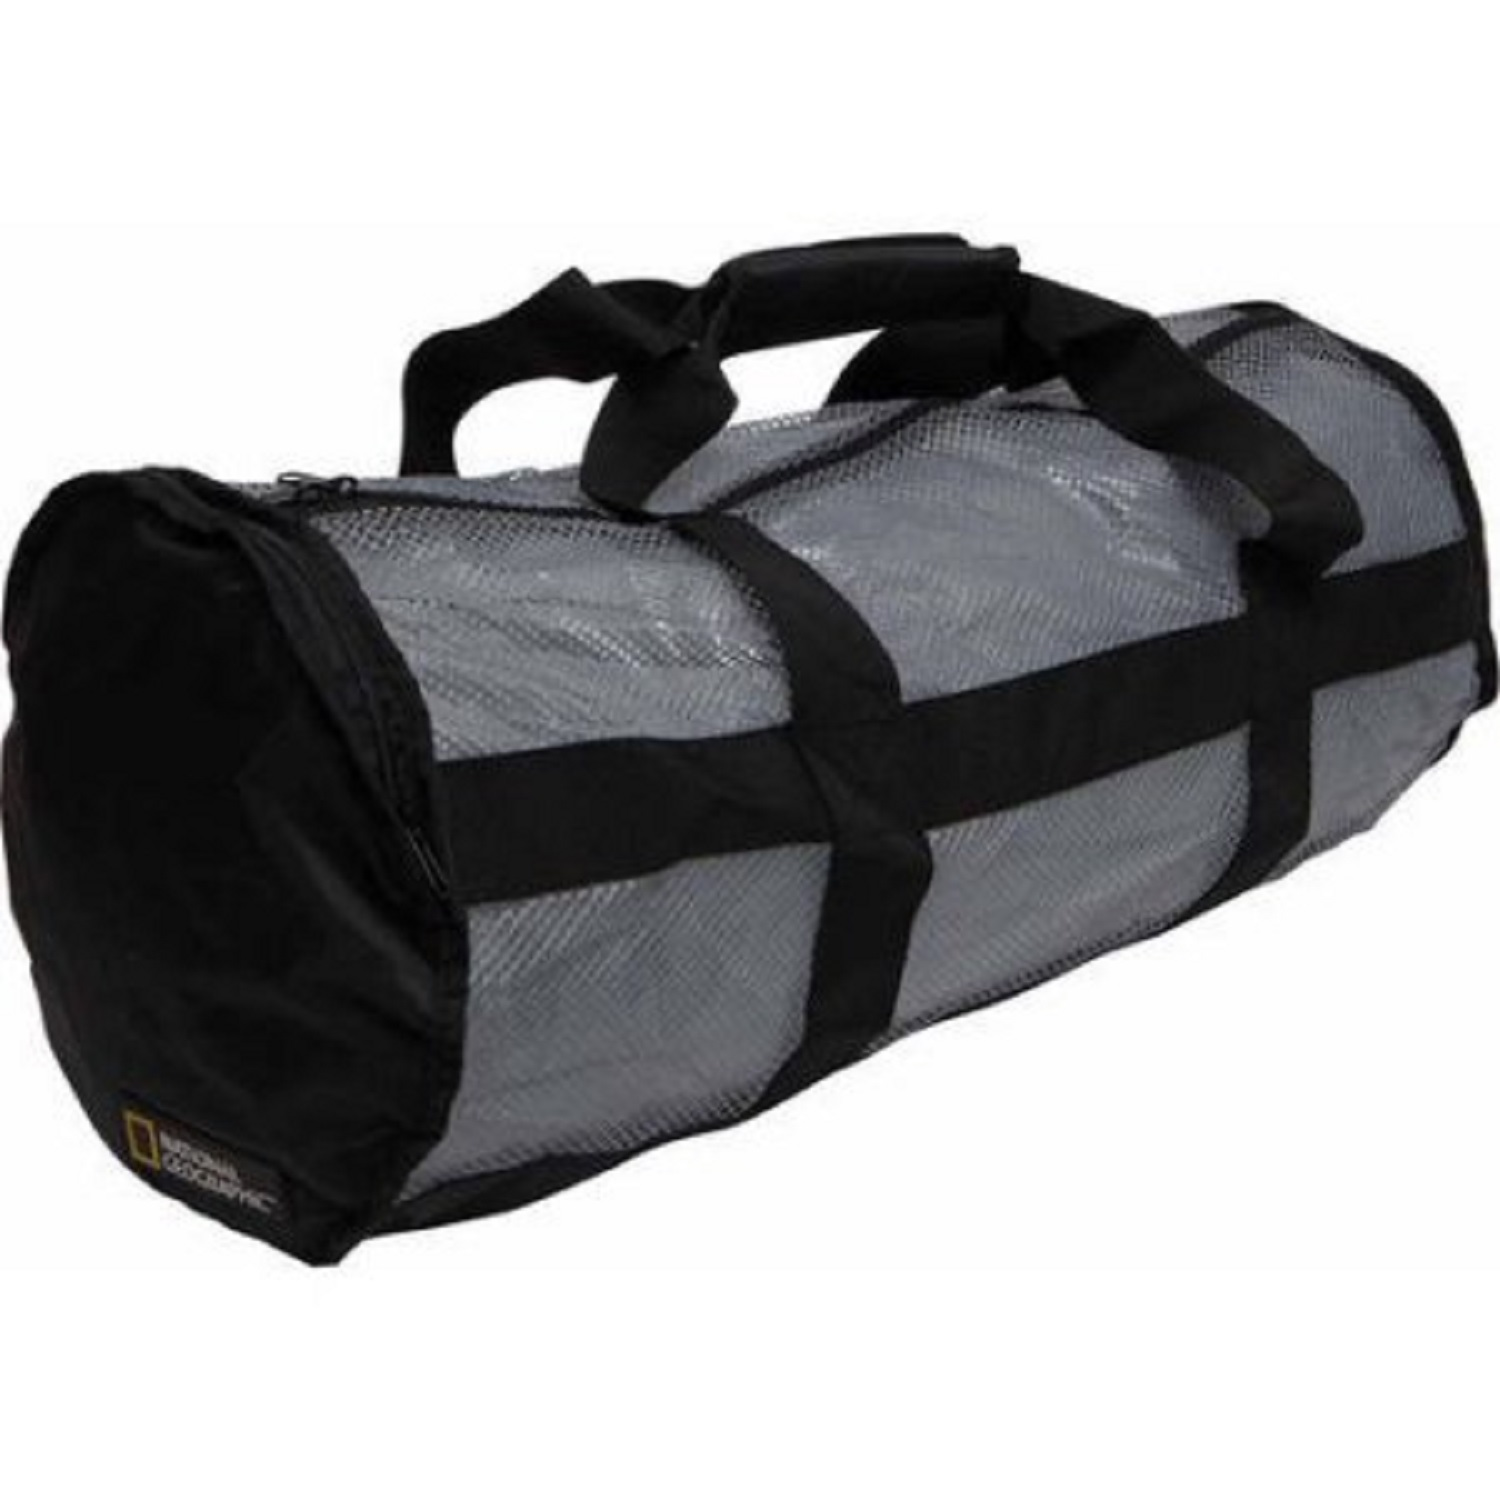 National Geographic Clamshell Deluxe Drawstring 2-Pocket Duffle by National Geographic Snorkeler